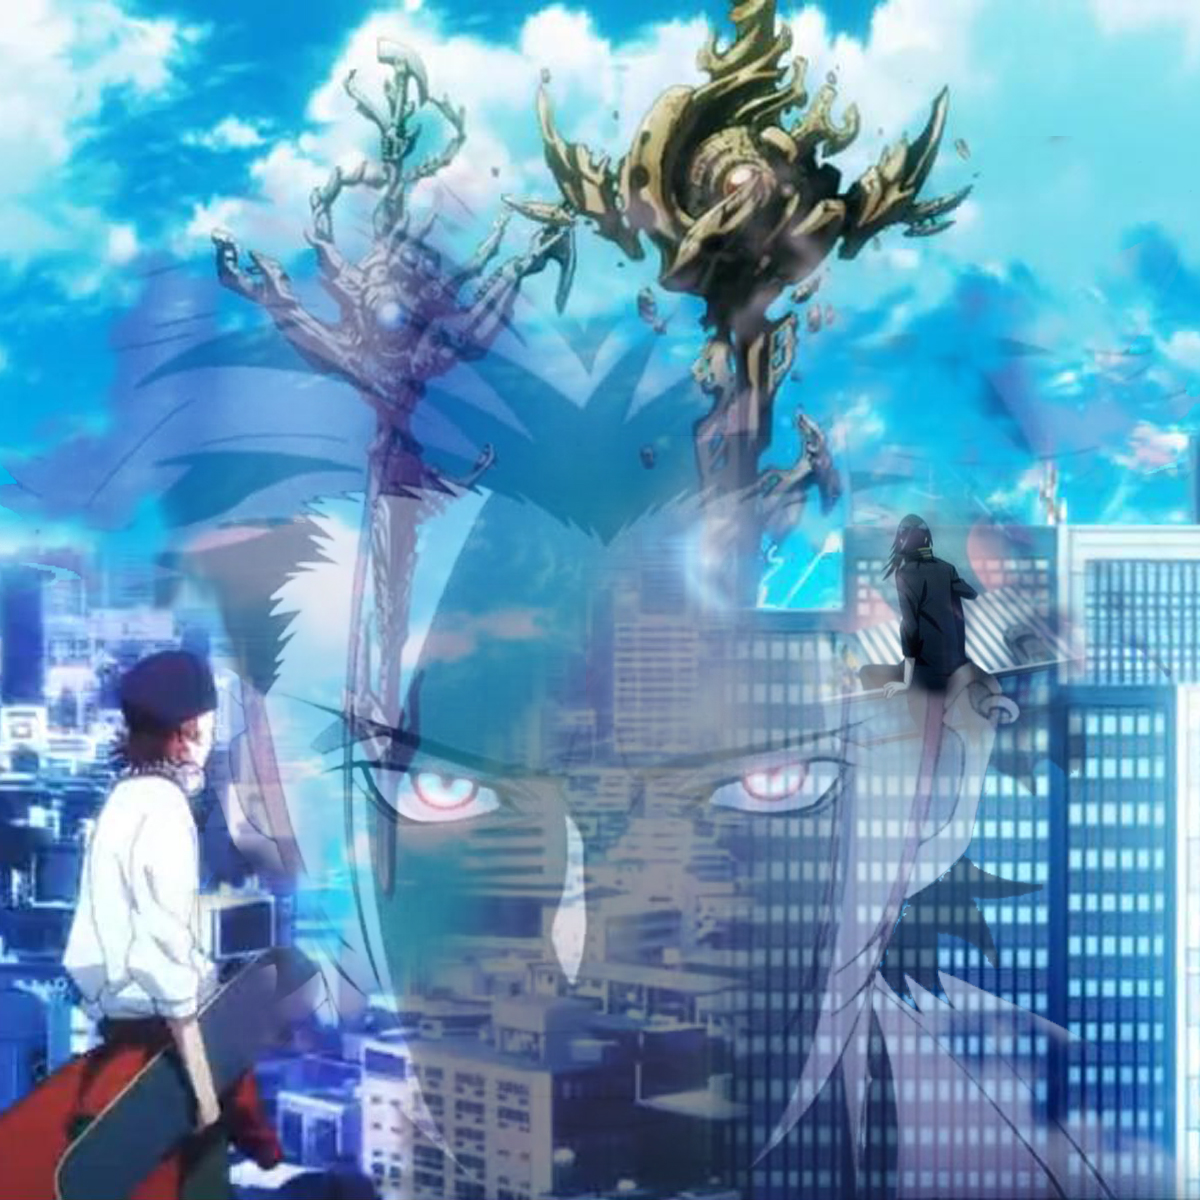 Urban Anime Series You MUST Watch - The Shinigami List